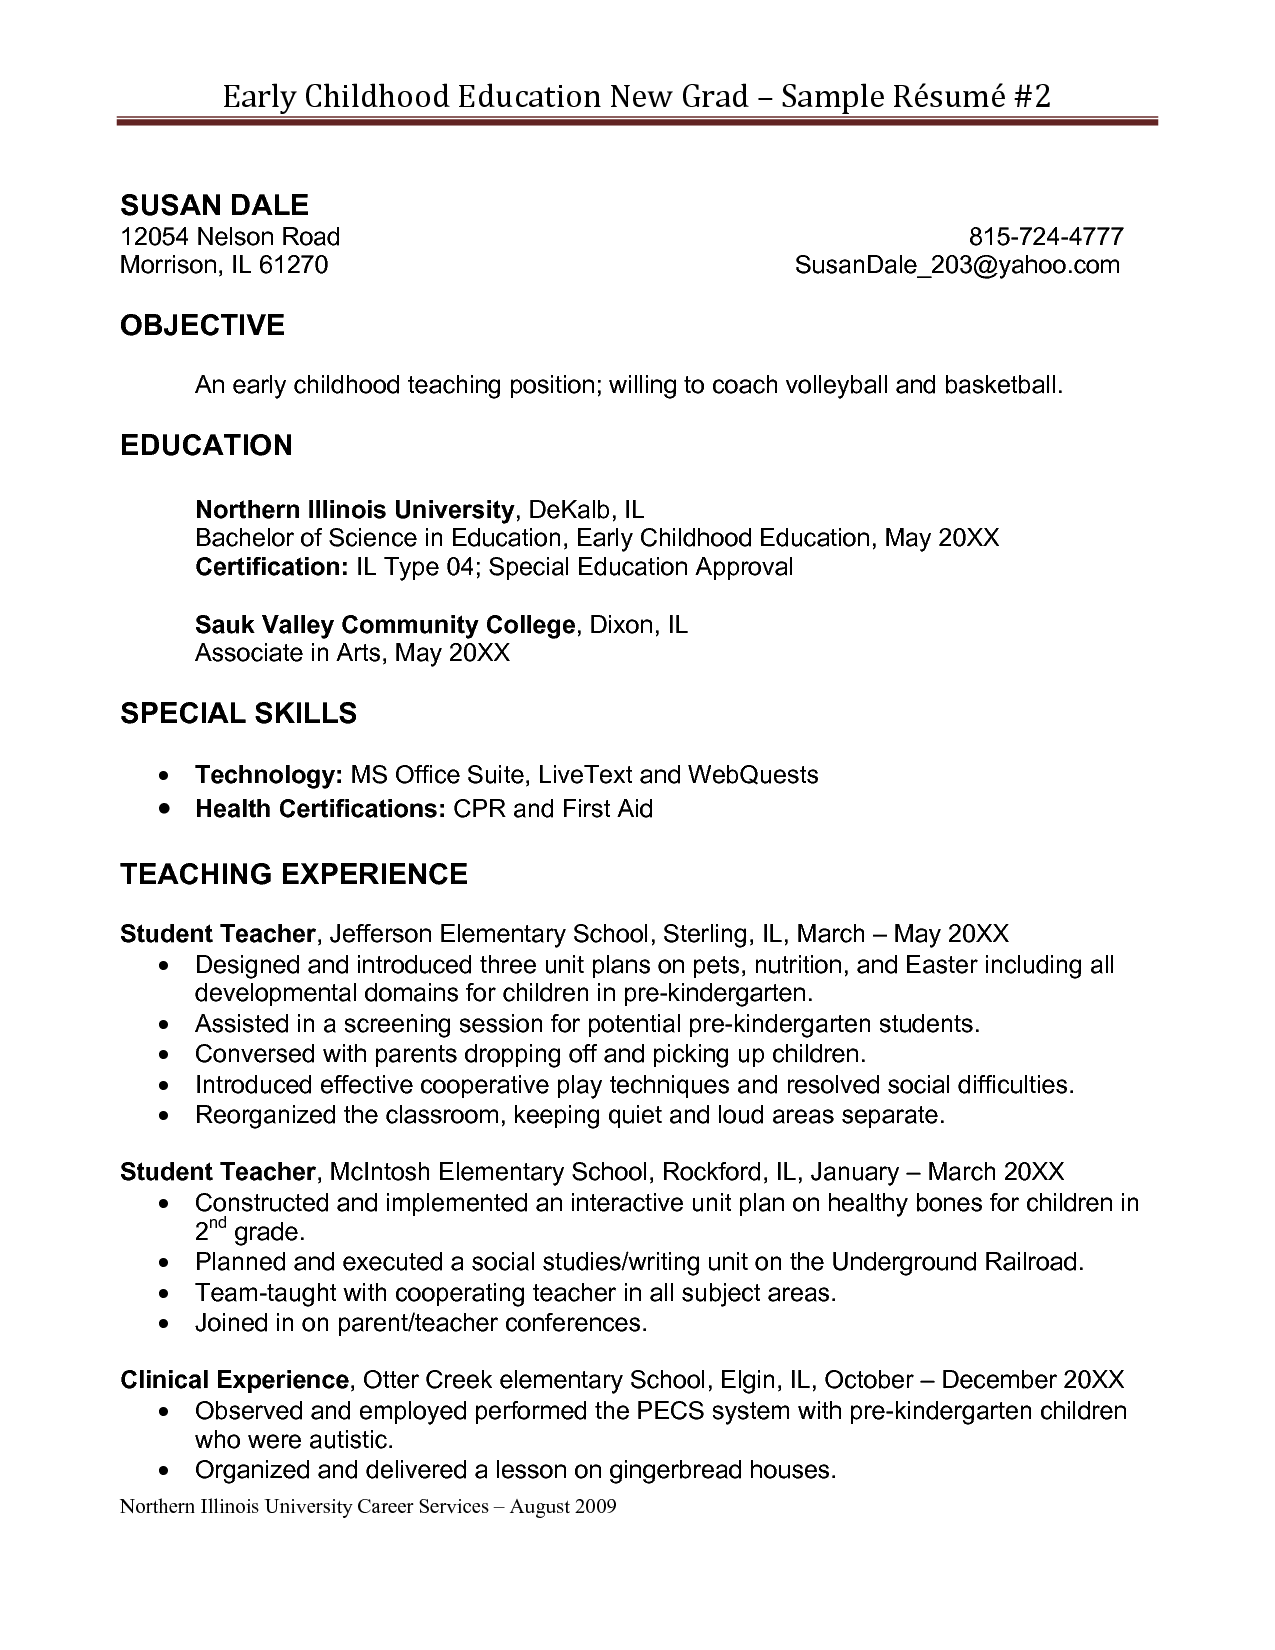 Ece Sample Resume Early Childhood Education Resume Objective Shebs